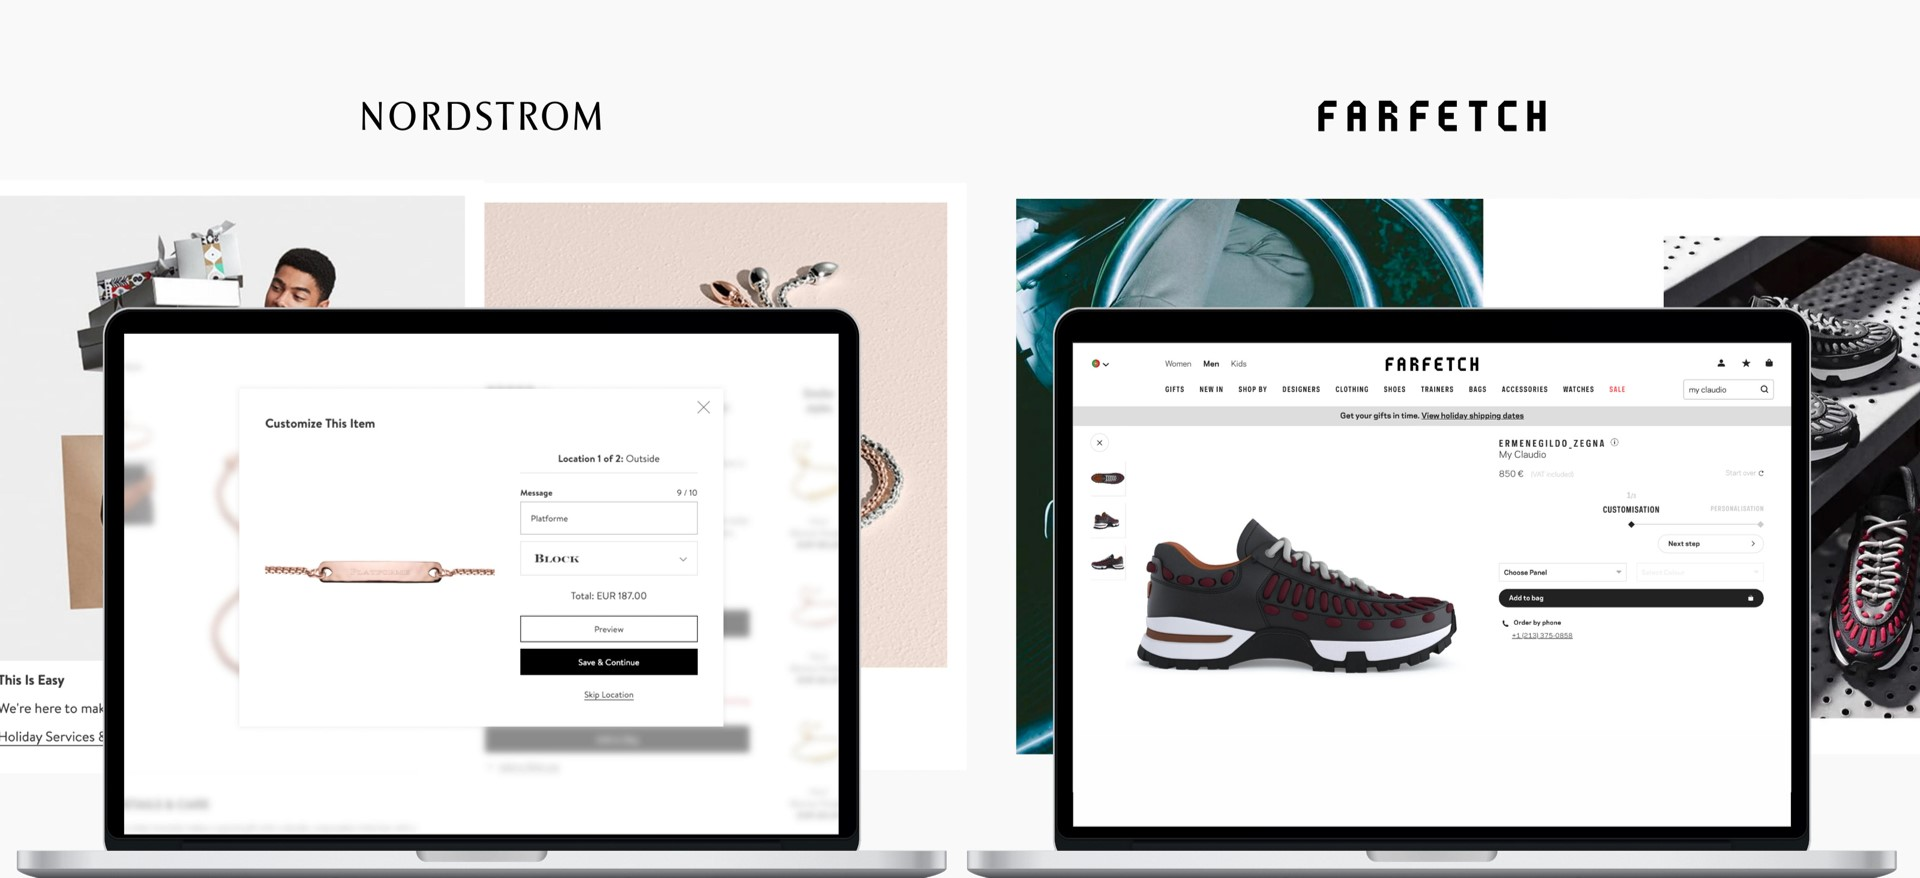 PlatformE personalization technology on Nordstrom and Farfetch